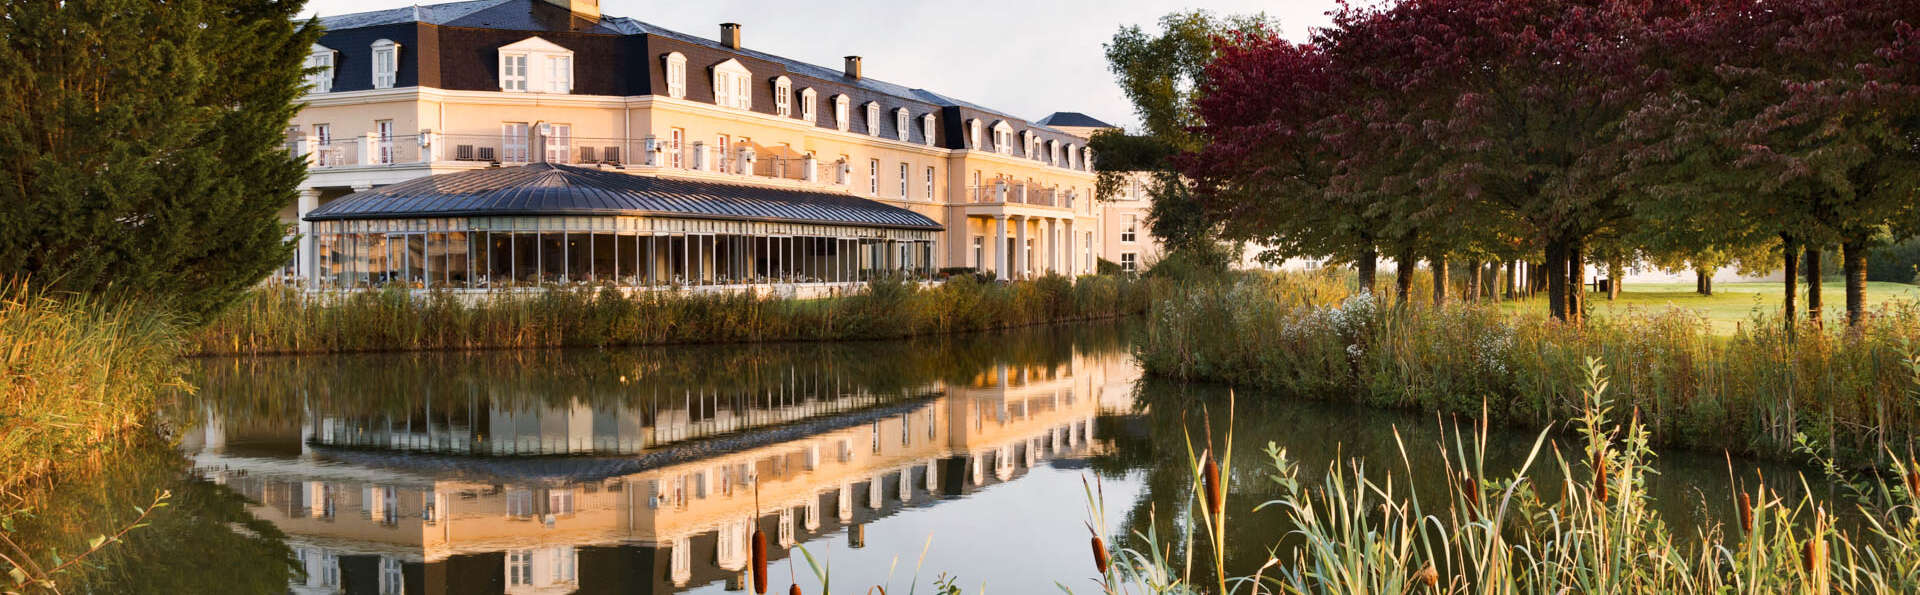 Mercure Chantilly Resort & Conventions - EDIT_NEW_FRONT4.jpg